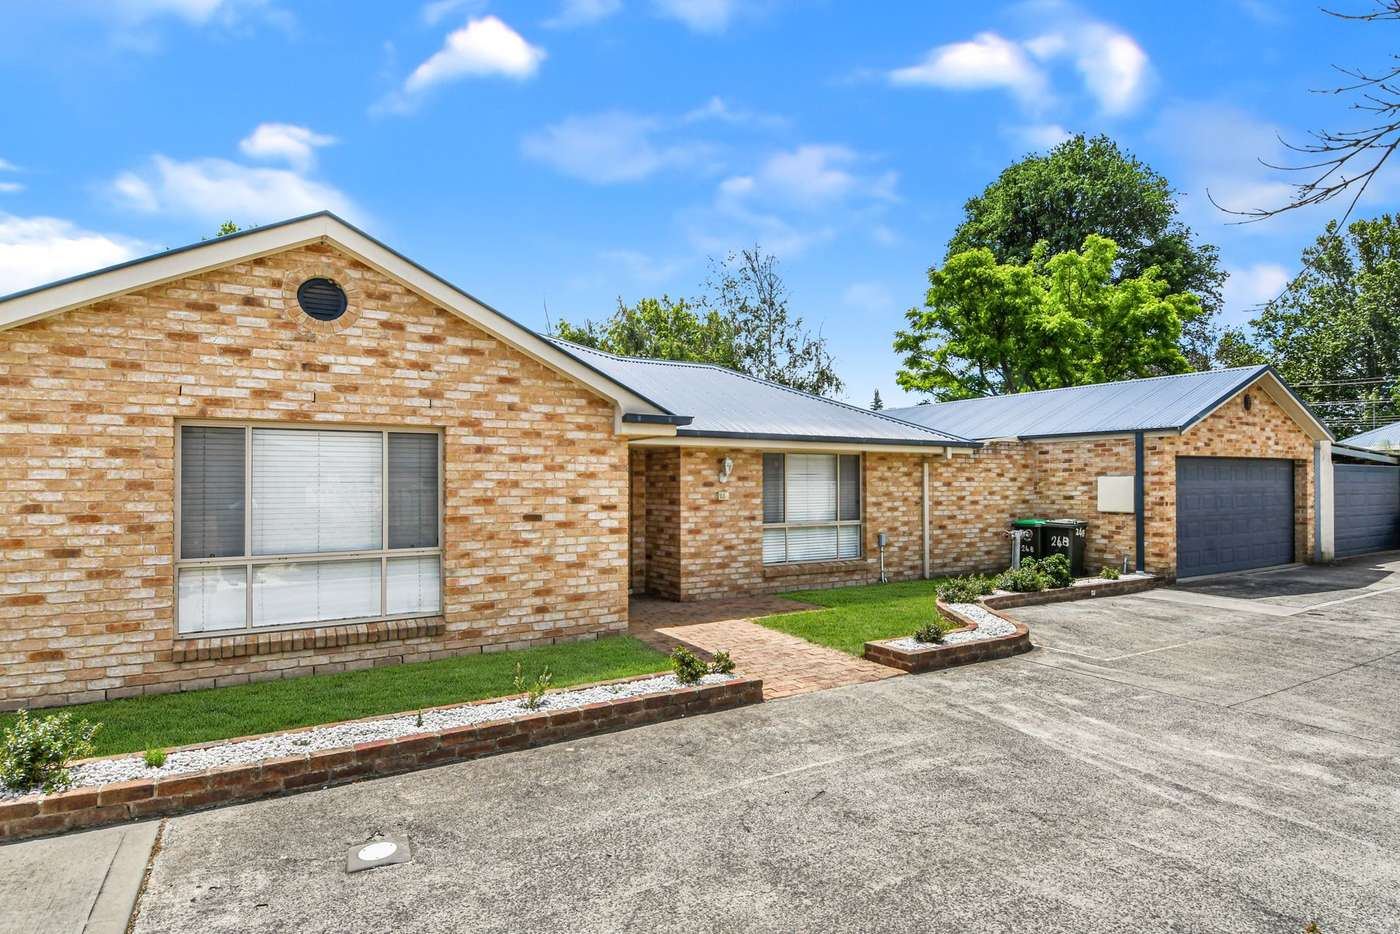 Main view of Homely house listing, 24B Durham Street, Bathurst NSW 2795